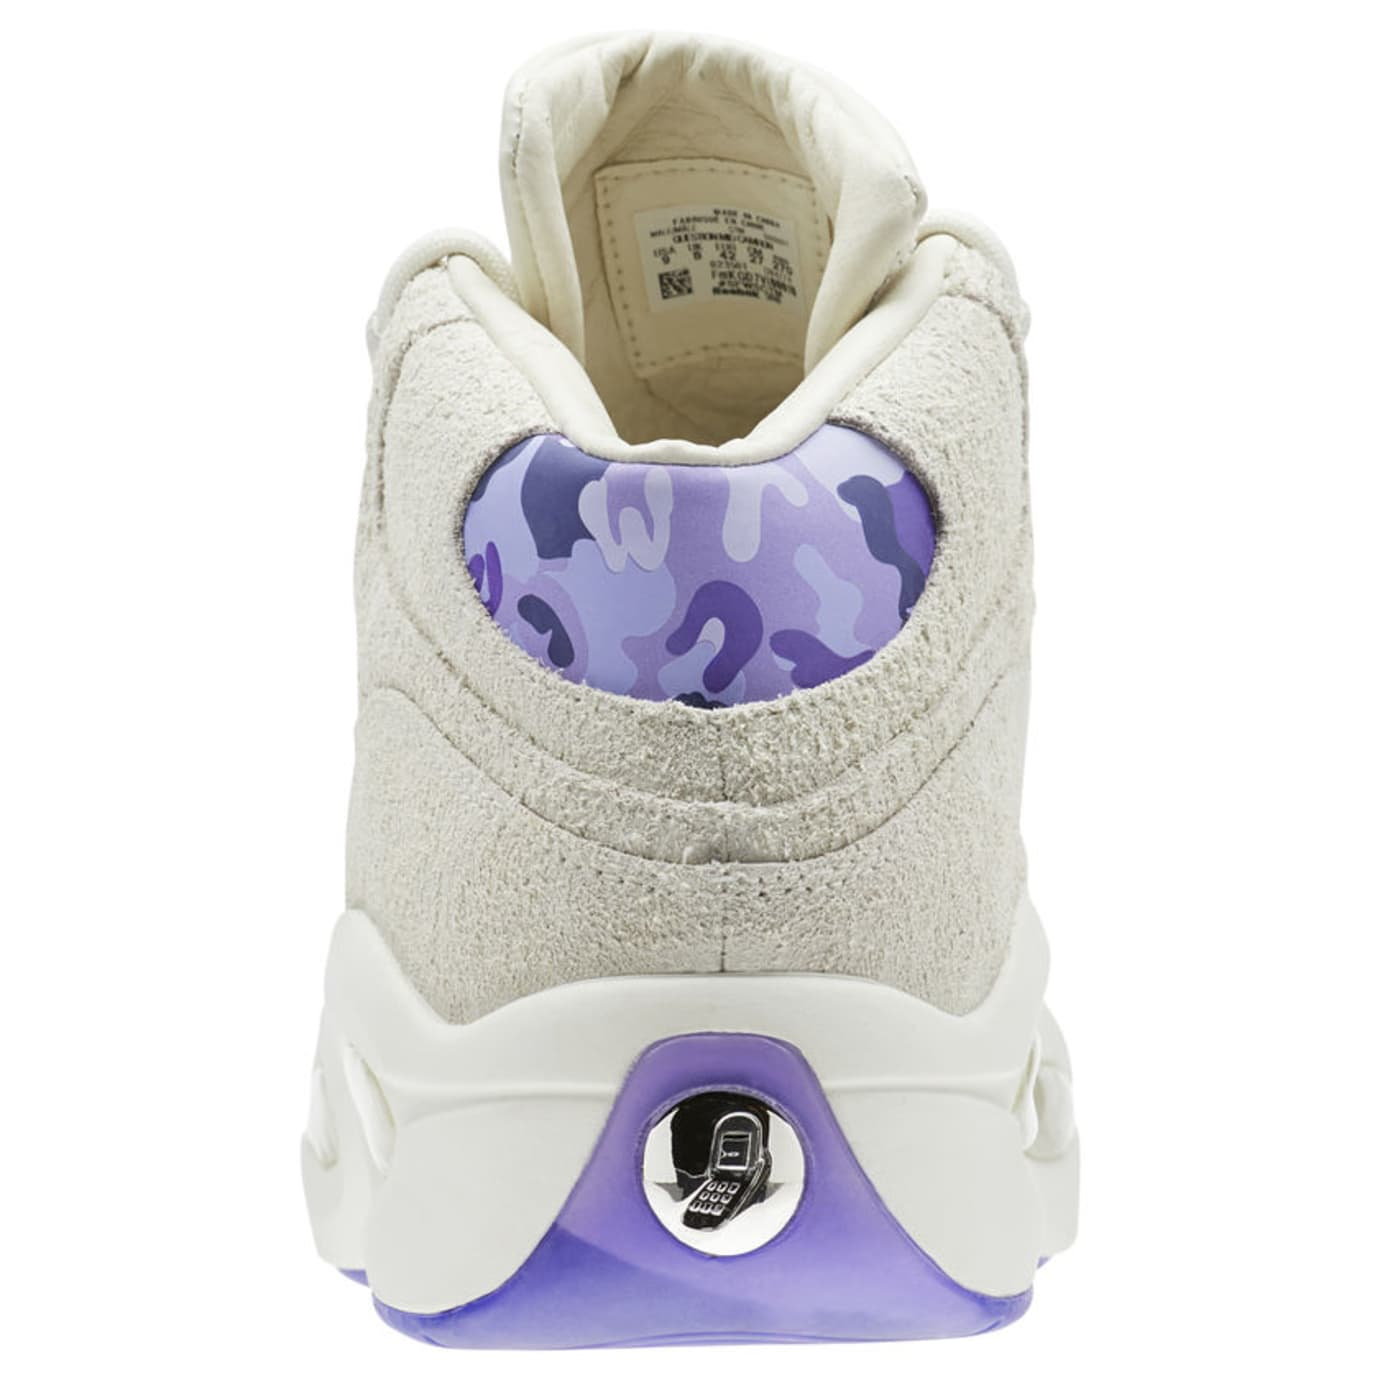 c92280793e6 Cam ron x Reebok Question Dipset Purple Camo Release Date